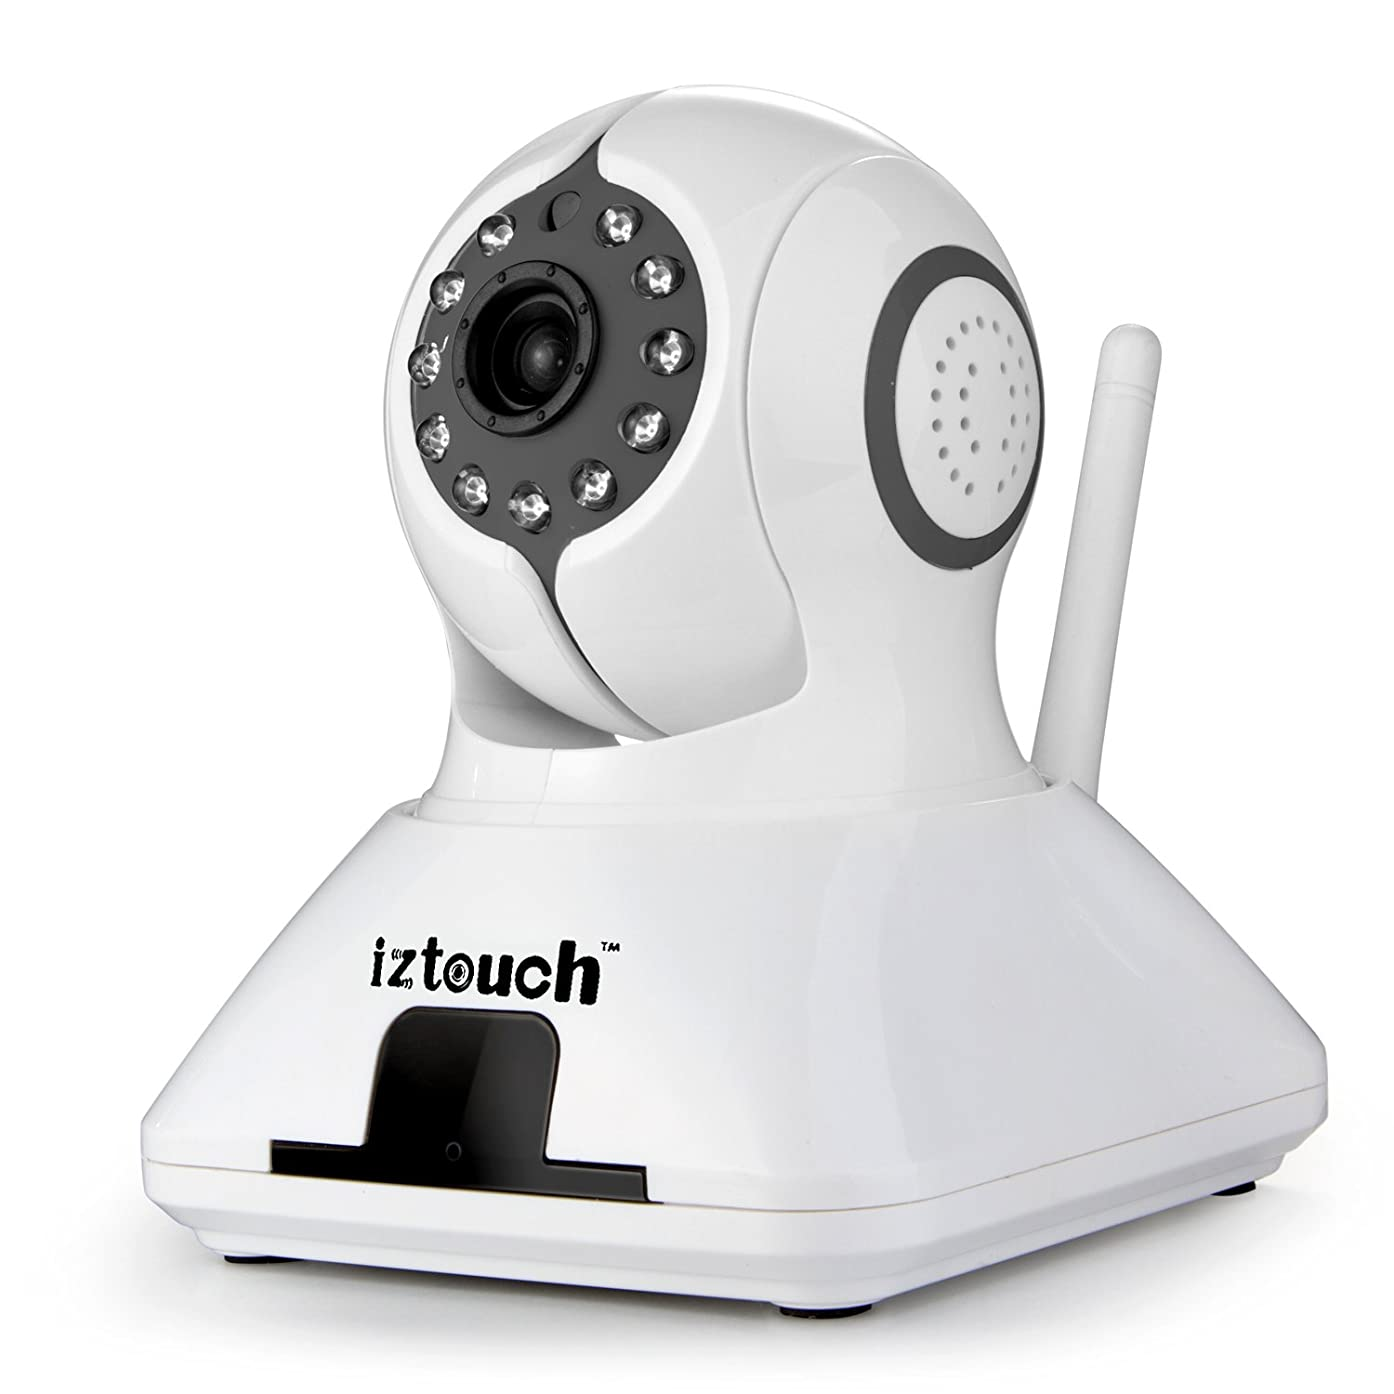 iZtouch IZSP-006 Black 1280x720P HD H.264 Wireless/Wired IP Camera with Two-Way Audio IR-Cut Filter Nithgt Vision Pan/Tilt Control QR Code Scan Phone remote monitoring supported